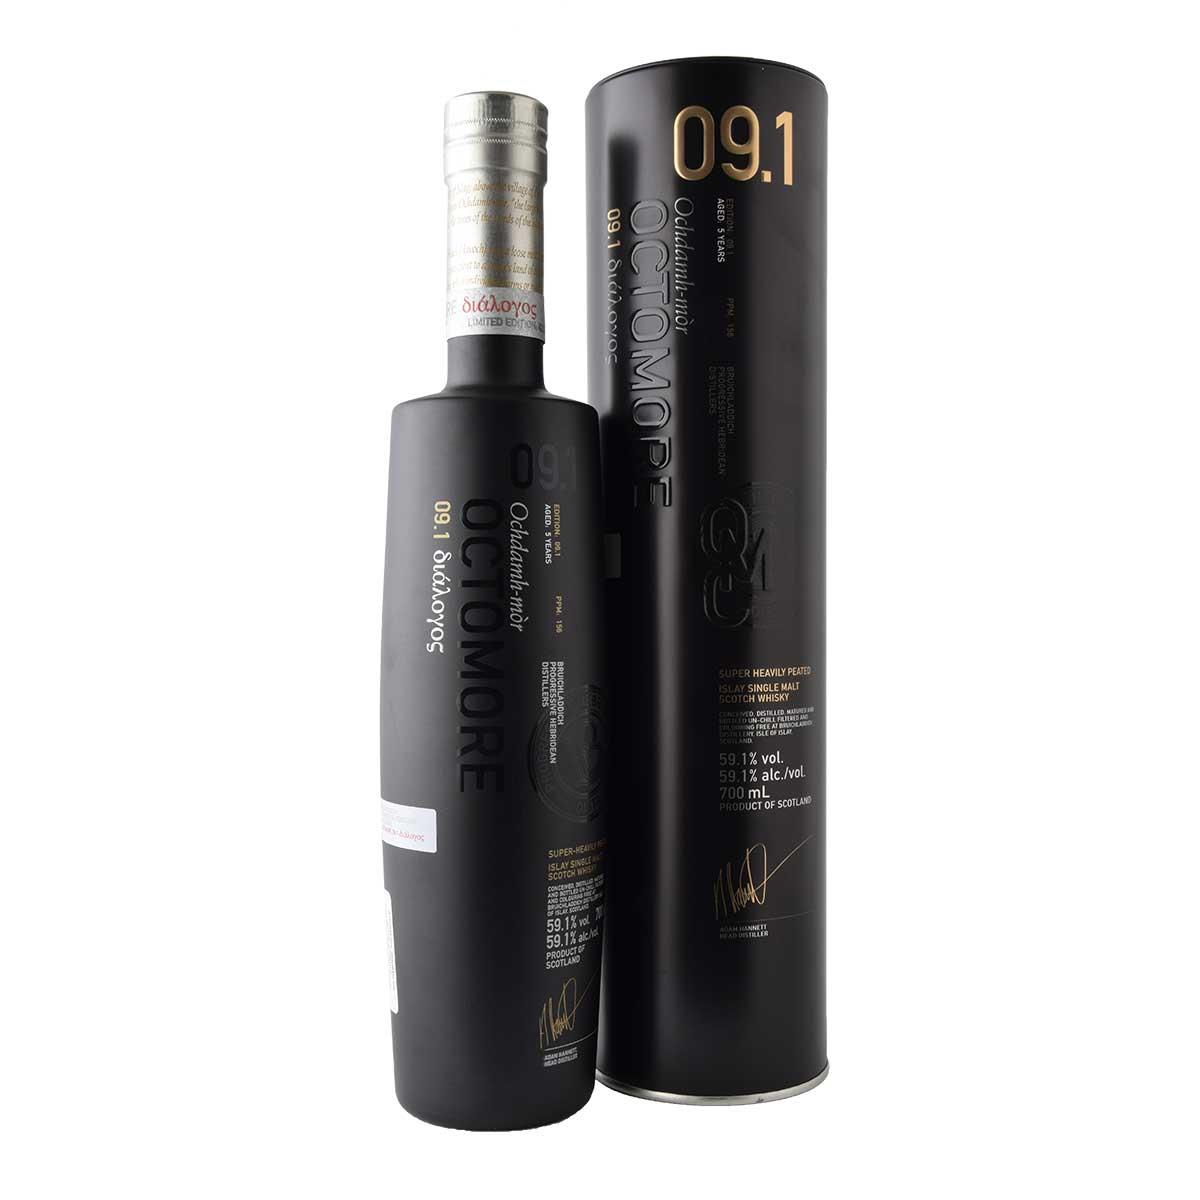 Octomore 700ml